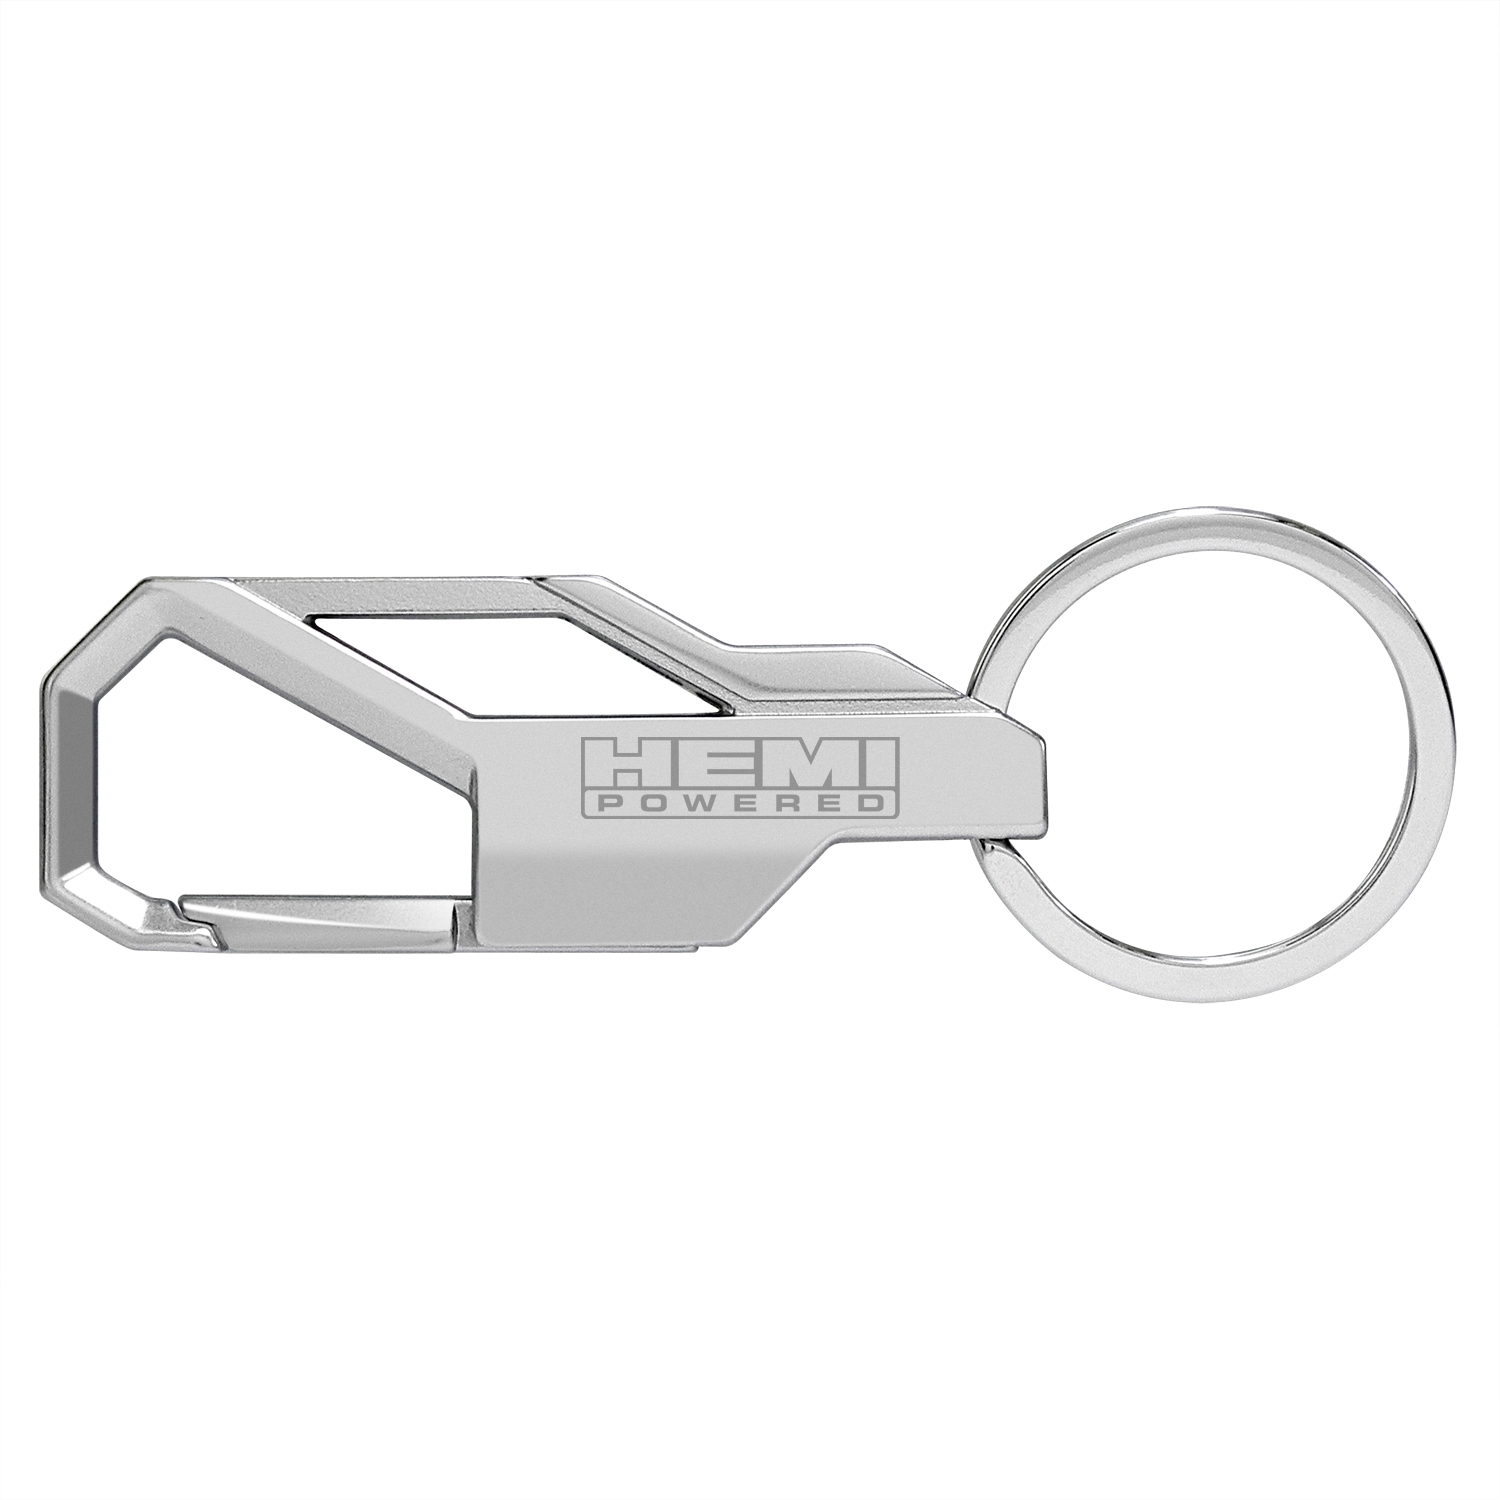 HEMI Powered Silver Snap Hook Metal Key Chain